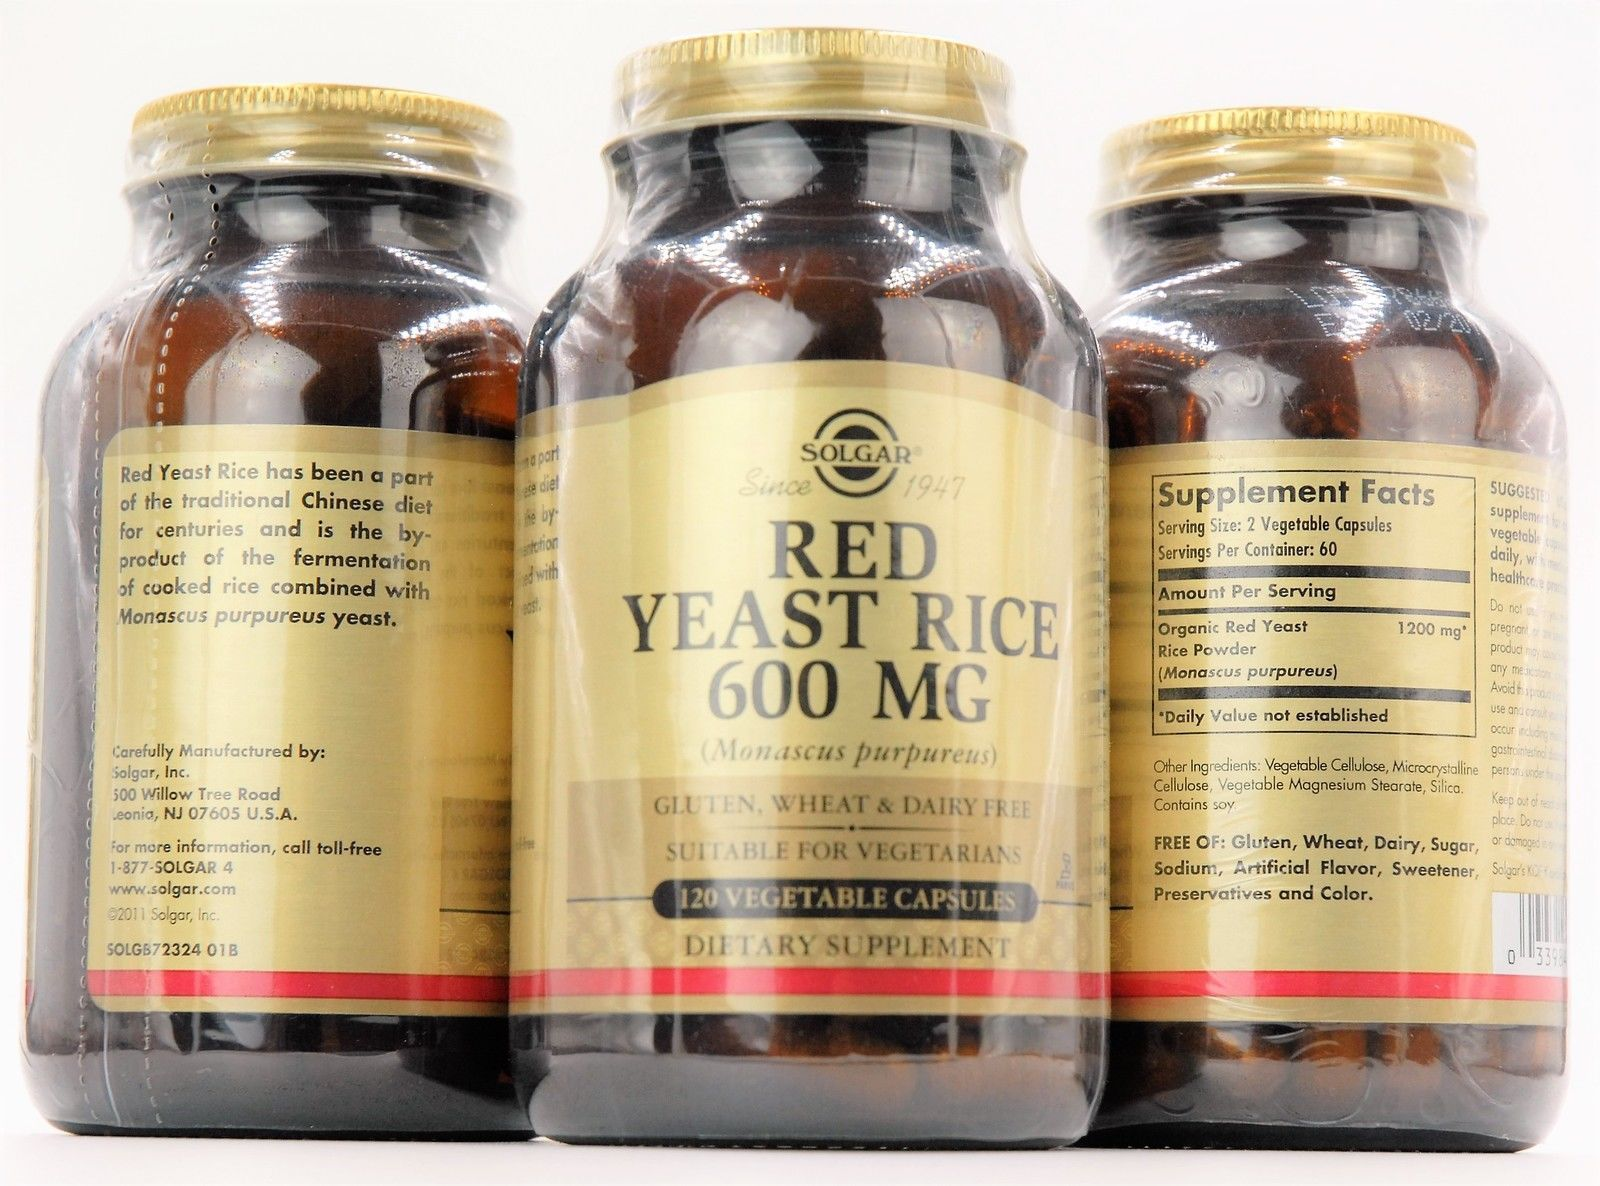 Red Yeast Rice Extract | 1200 Mg Per Serving | Heart Healthy Vegetarian Formula